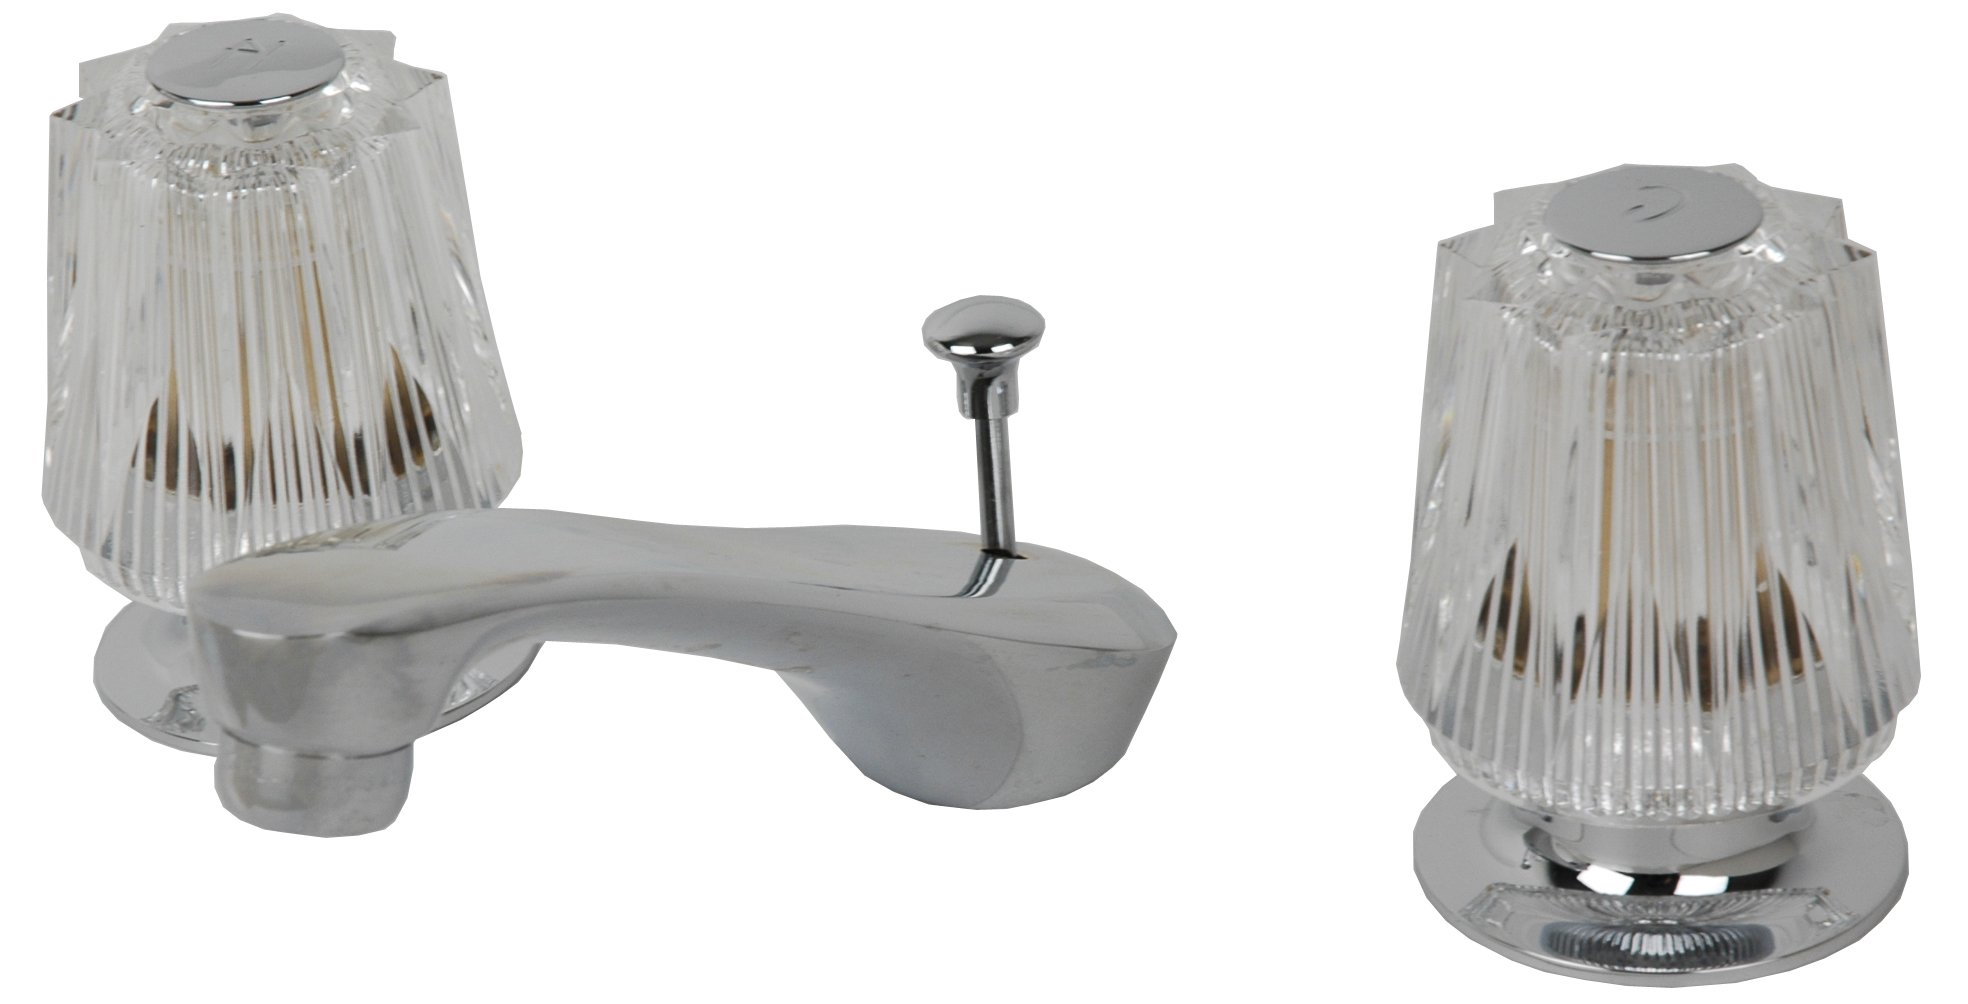 8'' Widespread Lavatory Faucet, Chrome Finish, with Compression Stems- By Plumb USA (Windsor Handle)